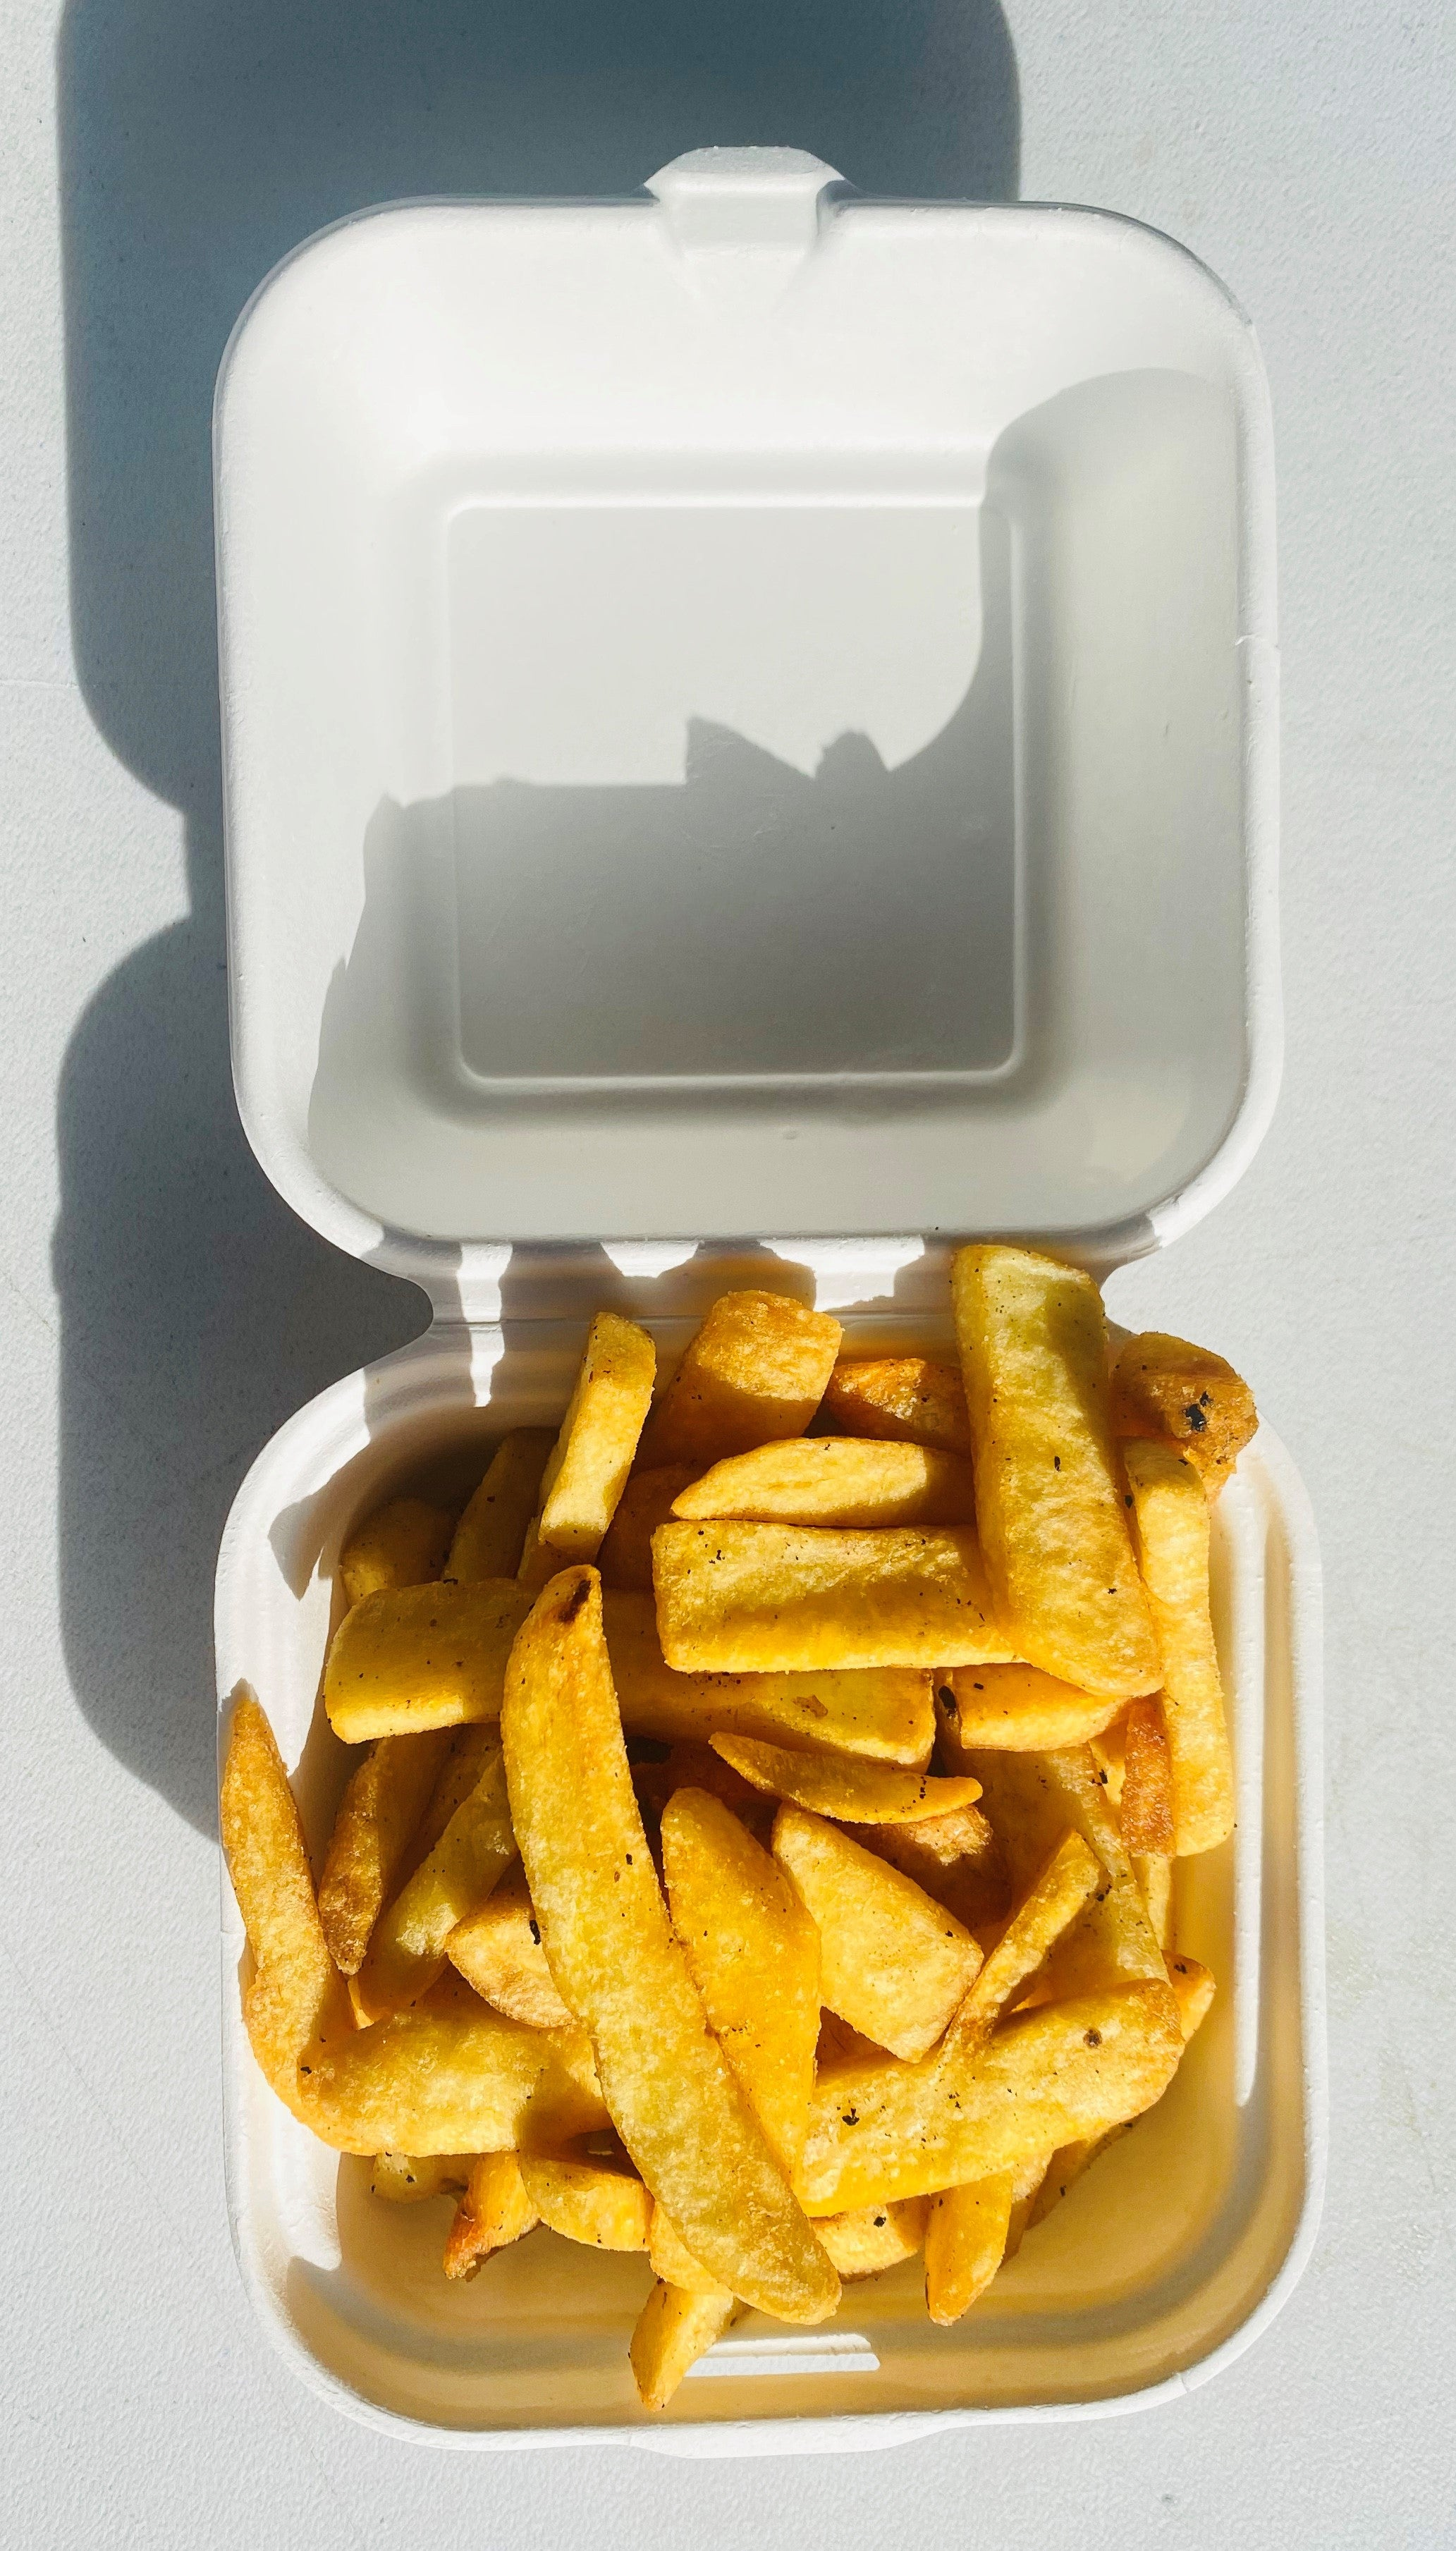 Chunky Chips with Cheese